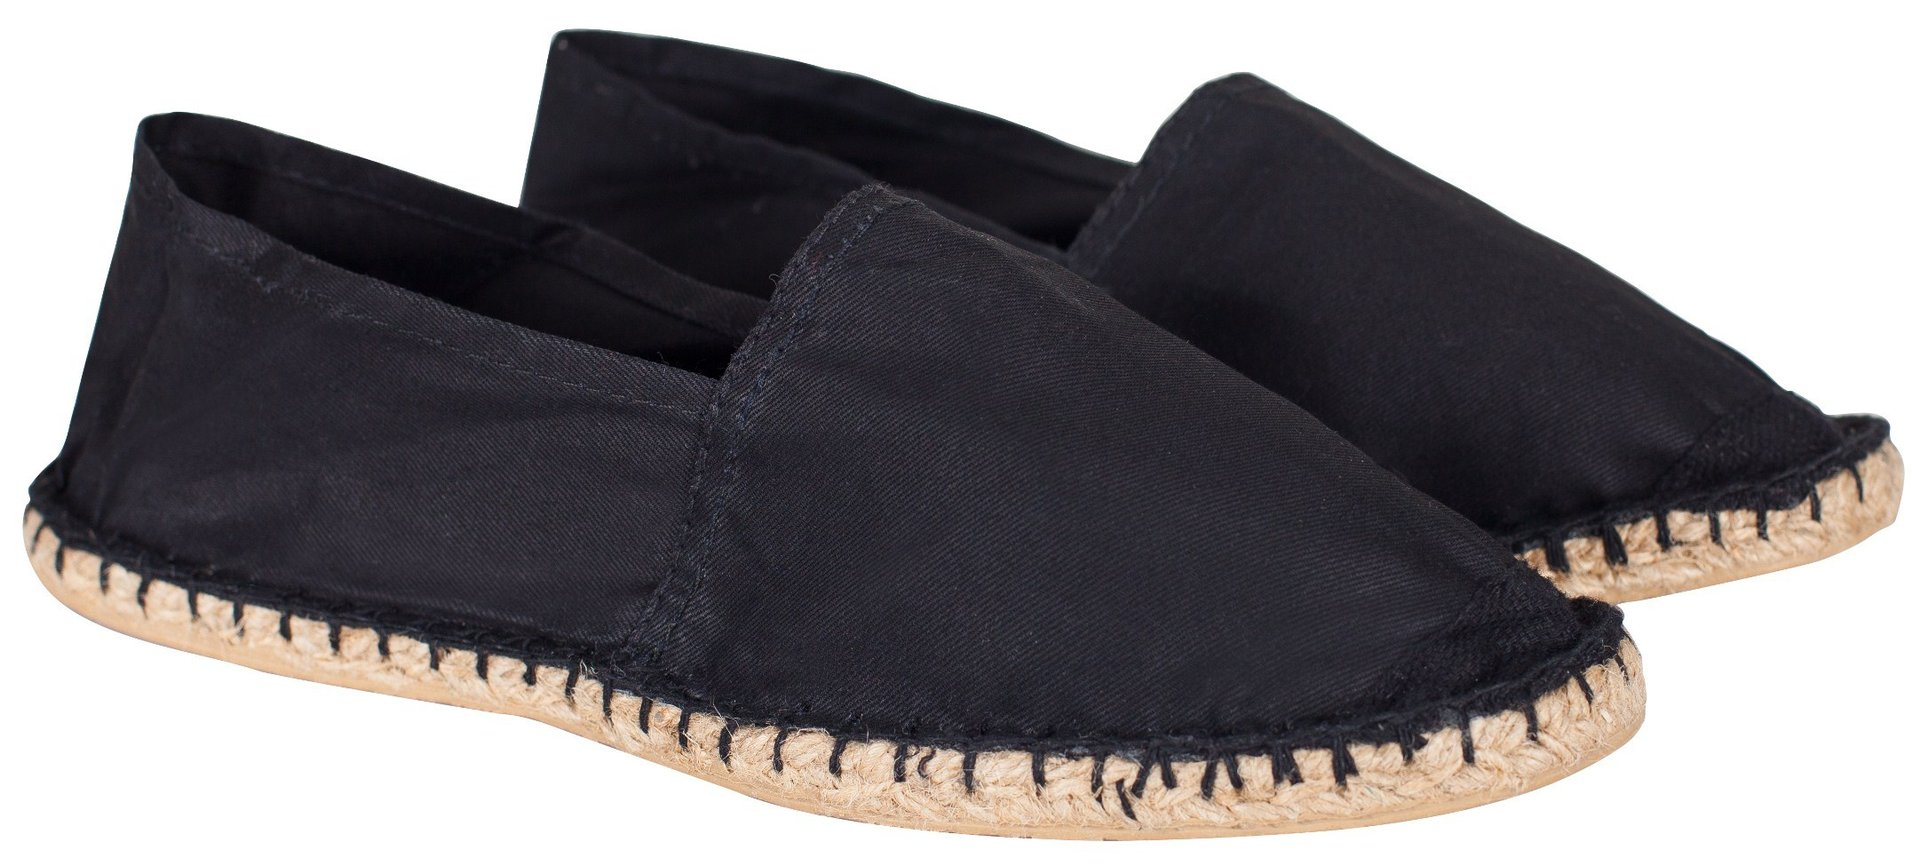 espadrilles schuhe einebinsenweisheit. Black Bedroom Furniture Sets. Home Design Ideas